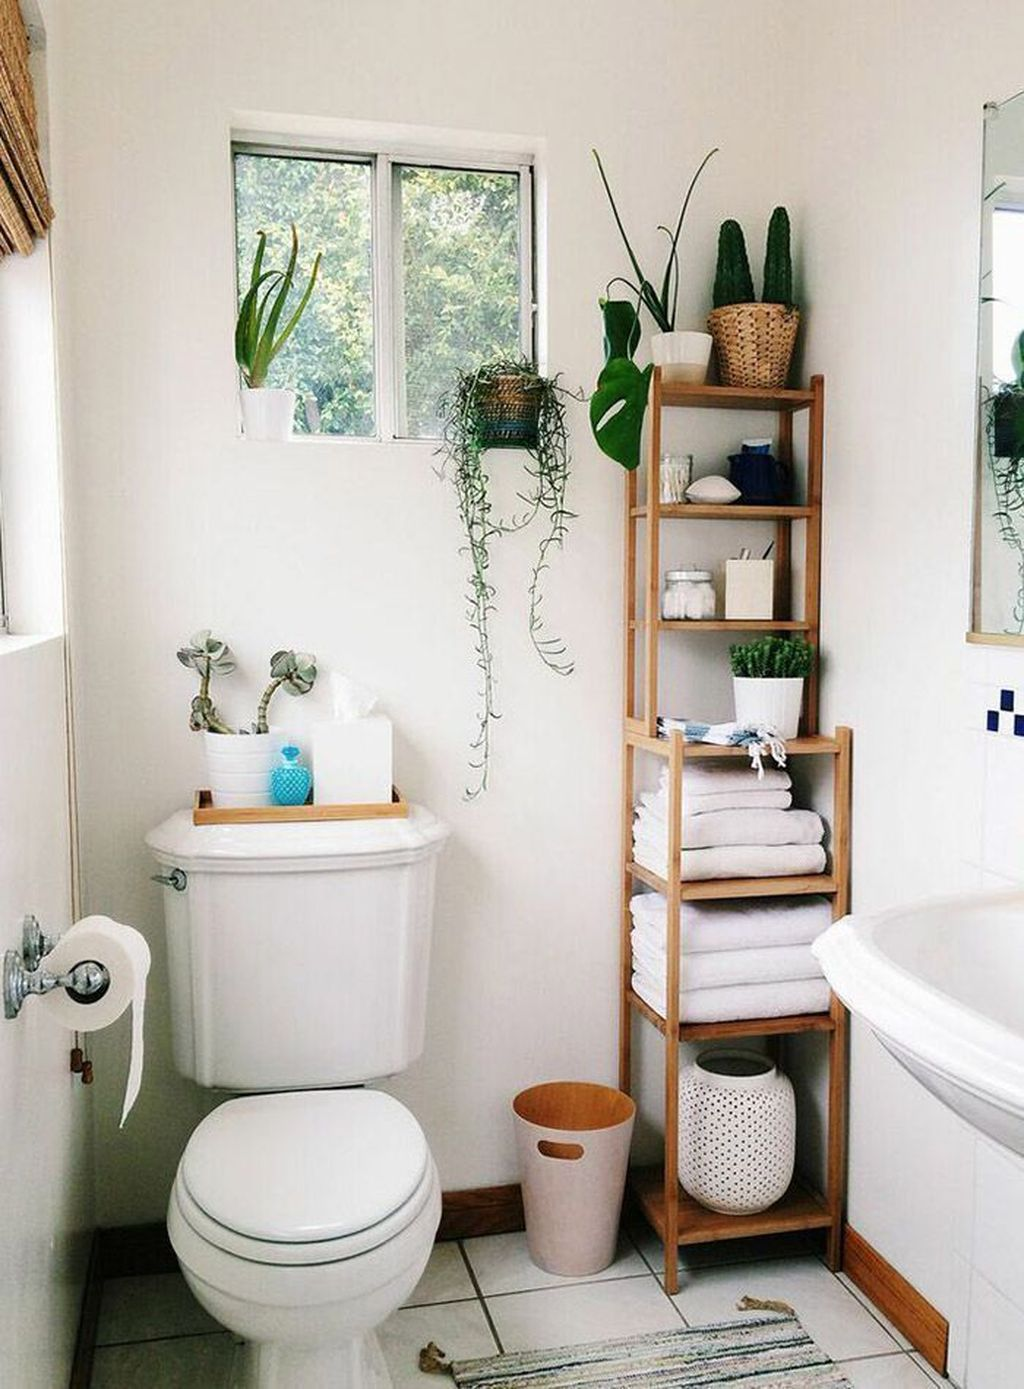 Amazing Bathroom Storage Design Ideas For Small Space 17